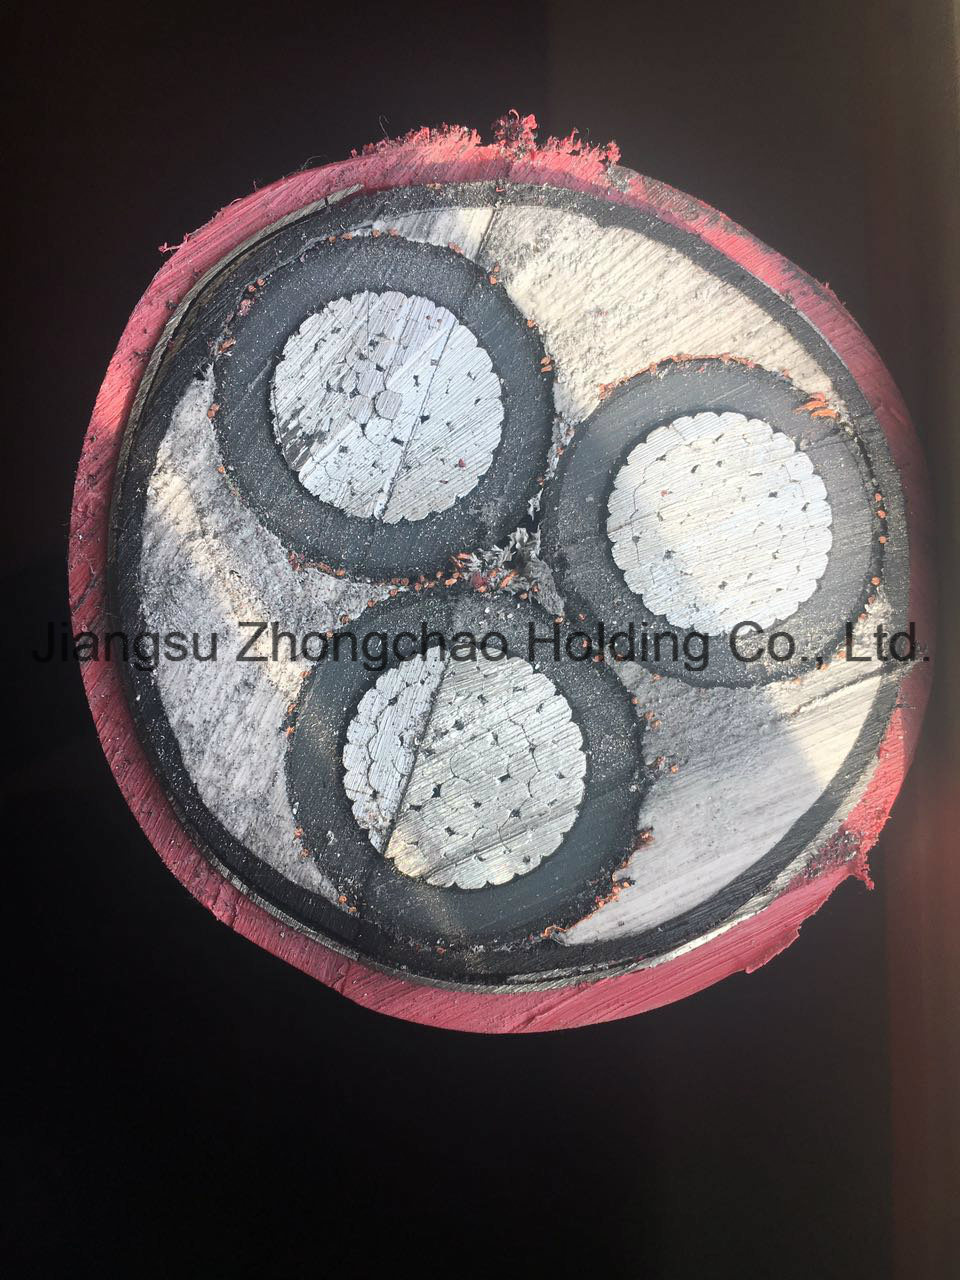 Al/XLPE/Cws/Sta/PVC Red 8.7/15kv Power Cable 3*500